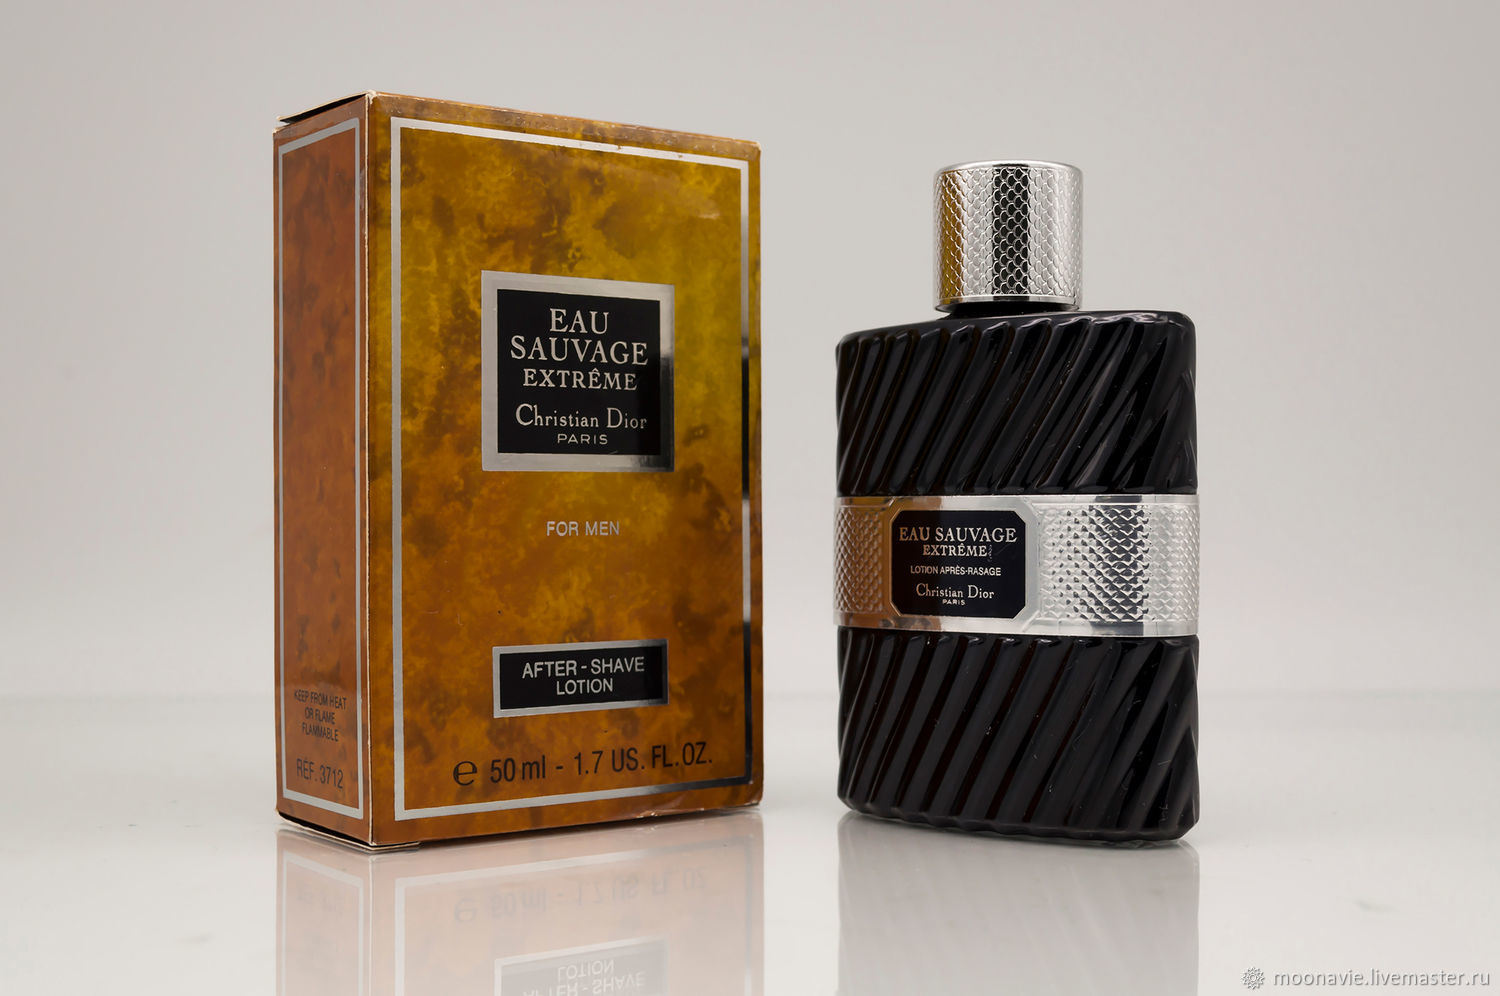 EAU SAUVAGE EXTREME (CHRISTIAN DIOR), after shave lotion 50 ml VINTAGE, Vintage perfume, St. Petersburg,  Фото №1